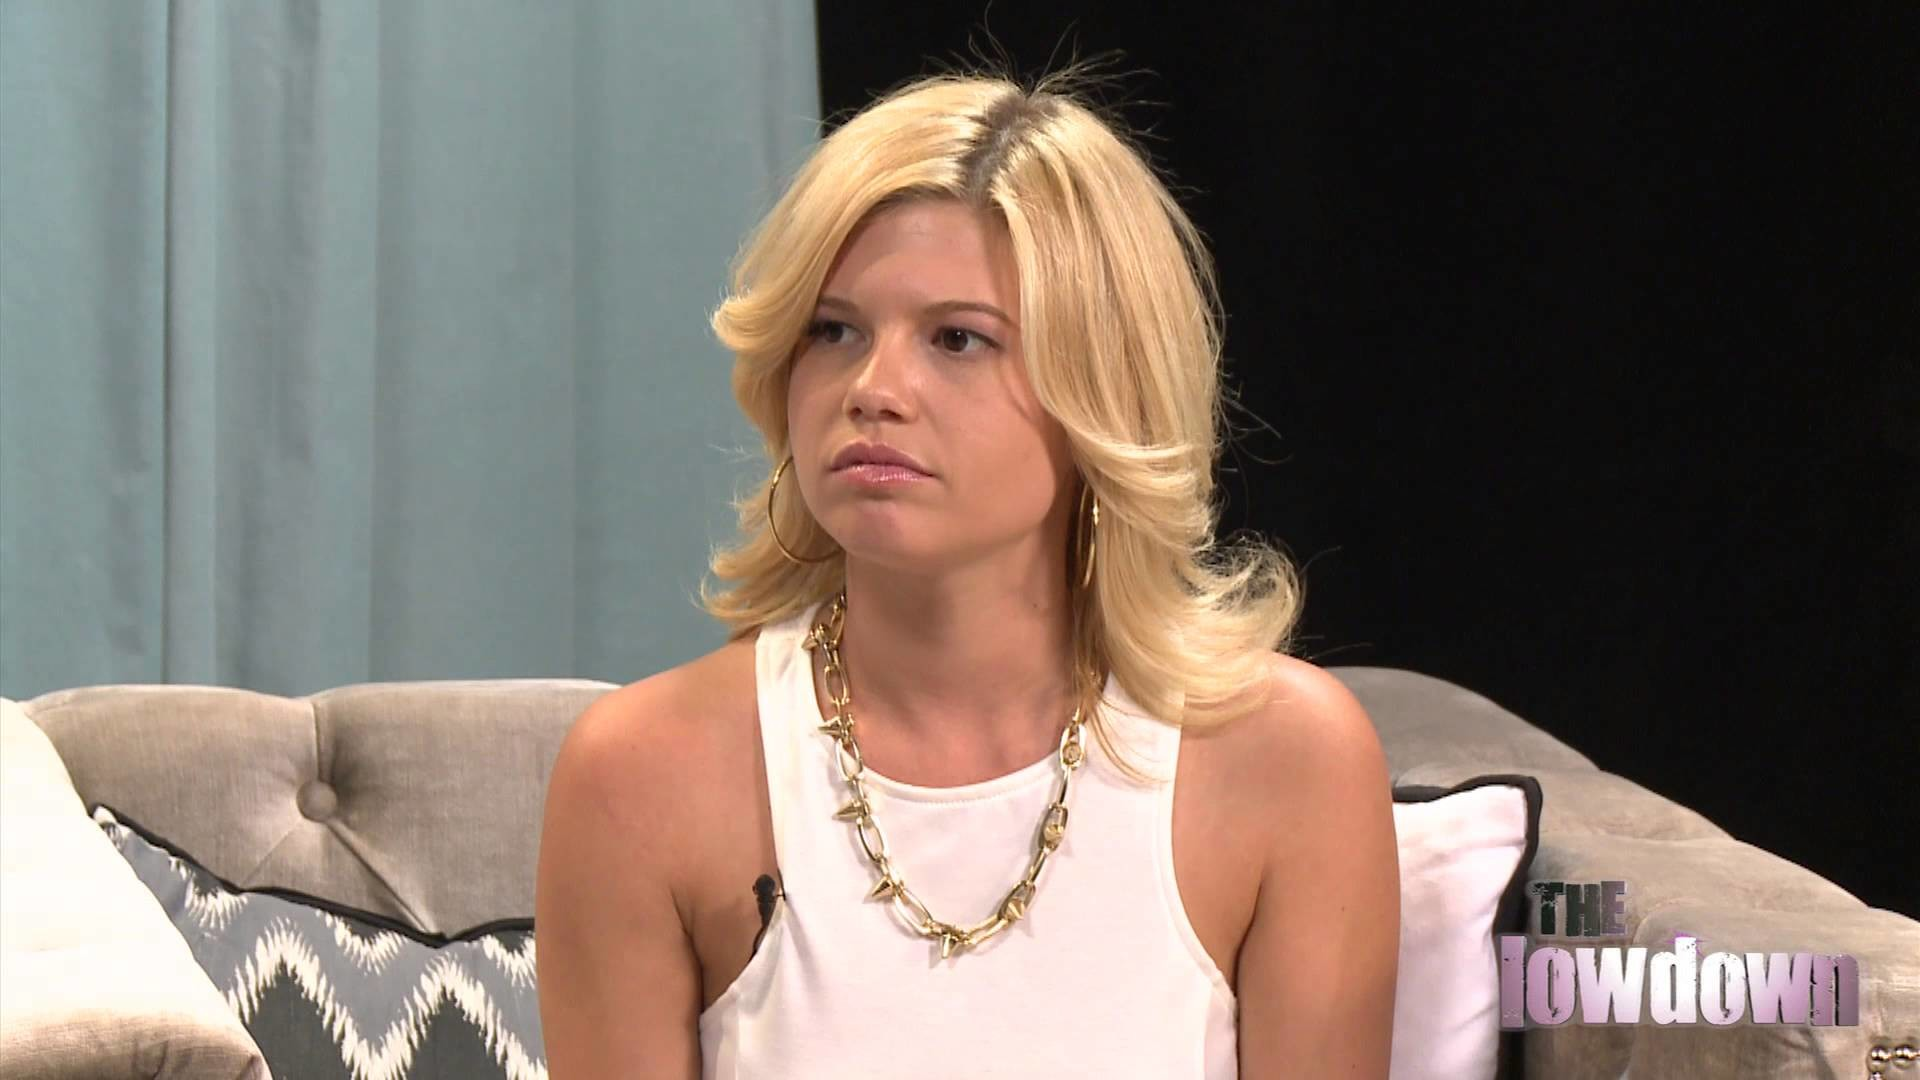 Does anyone else feel like Minkus grew up to be Chanel West Coast?